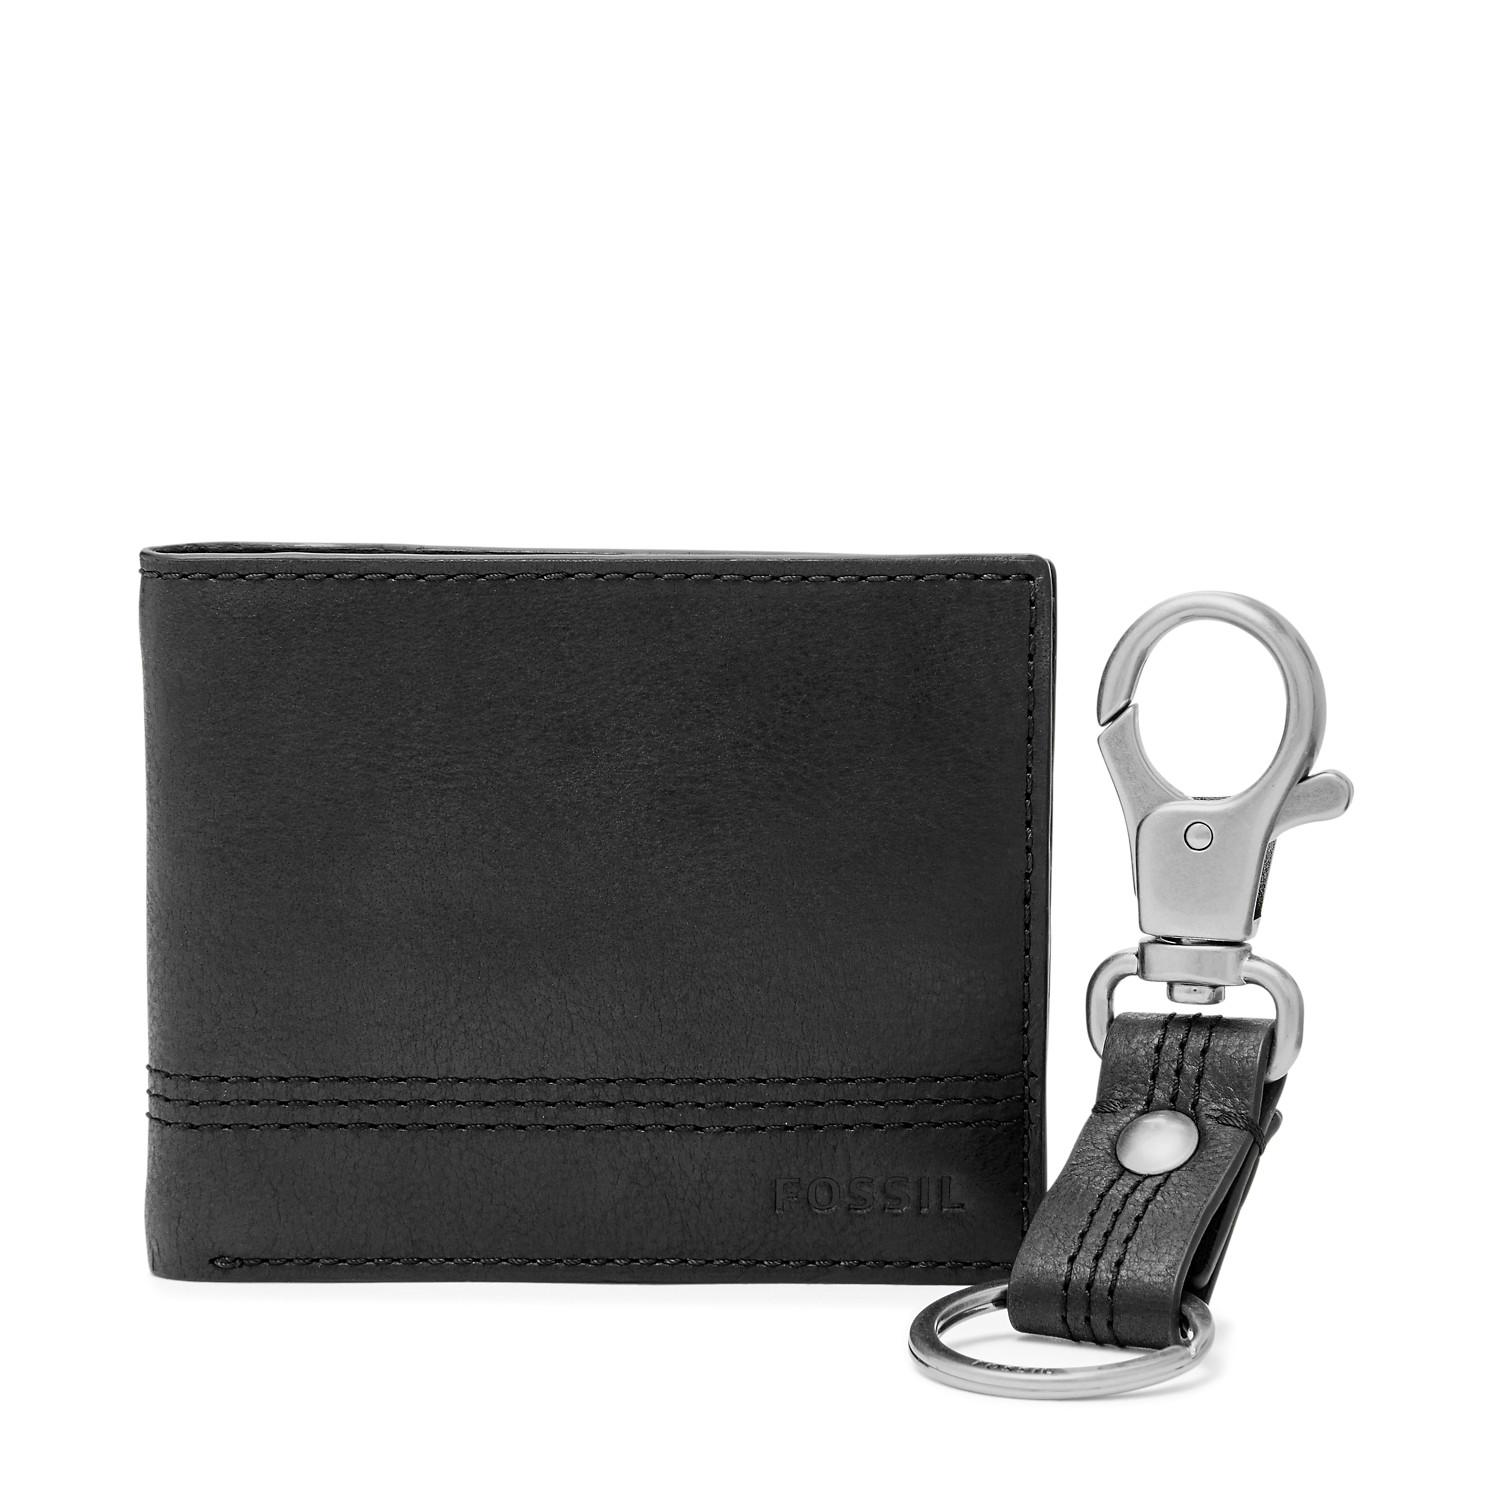 Buy Sell Cheapest Fossil Pria Fs5271 Best Quality Product Deals Jam Tangan Minimalist Slim Light Brown Leather Fs5305 Kyle Rfid Traveler Keyfob Gift Set Black Sml 1566001